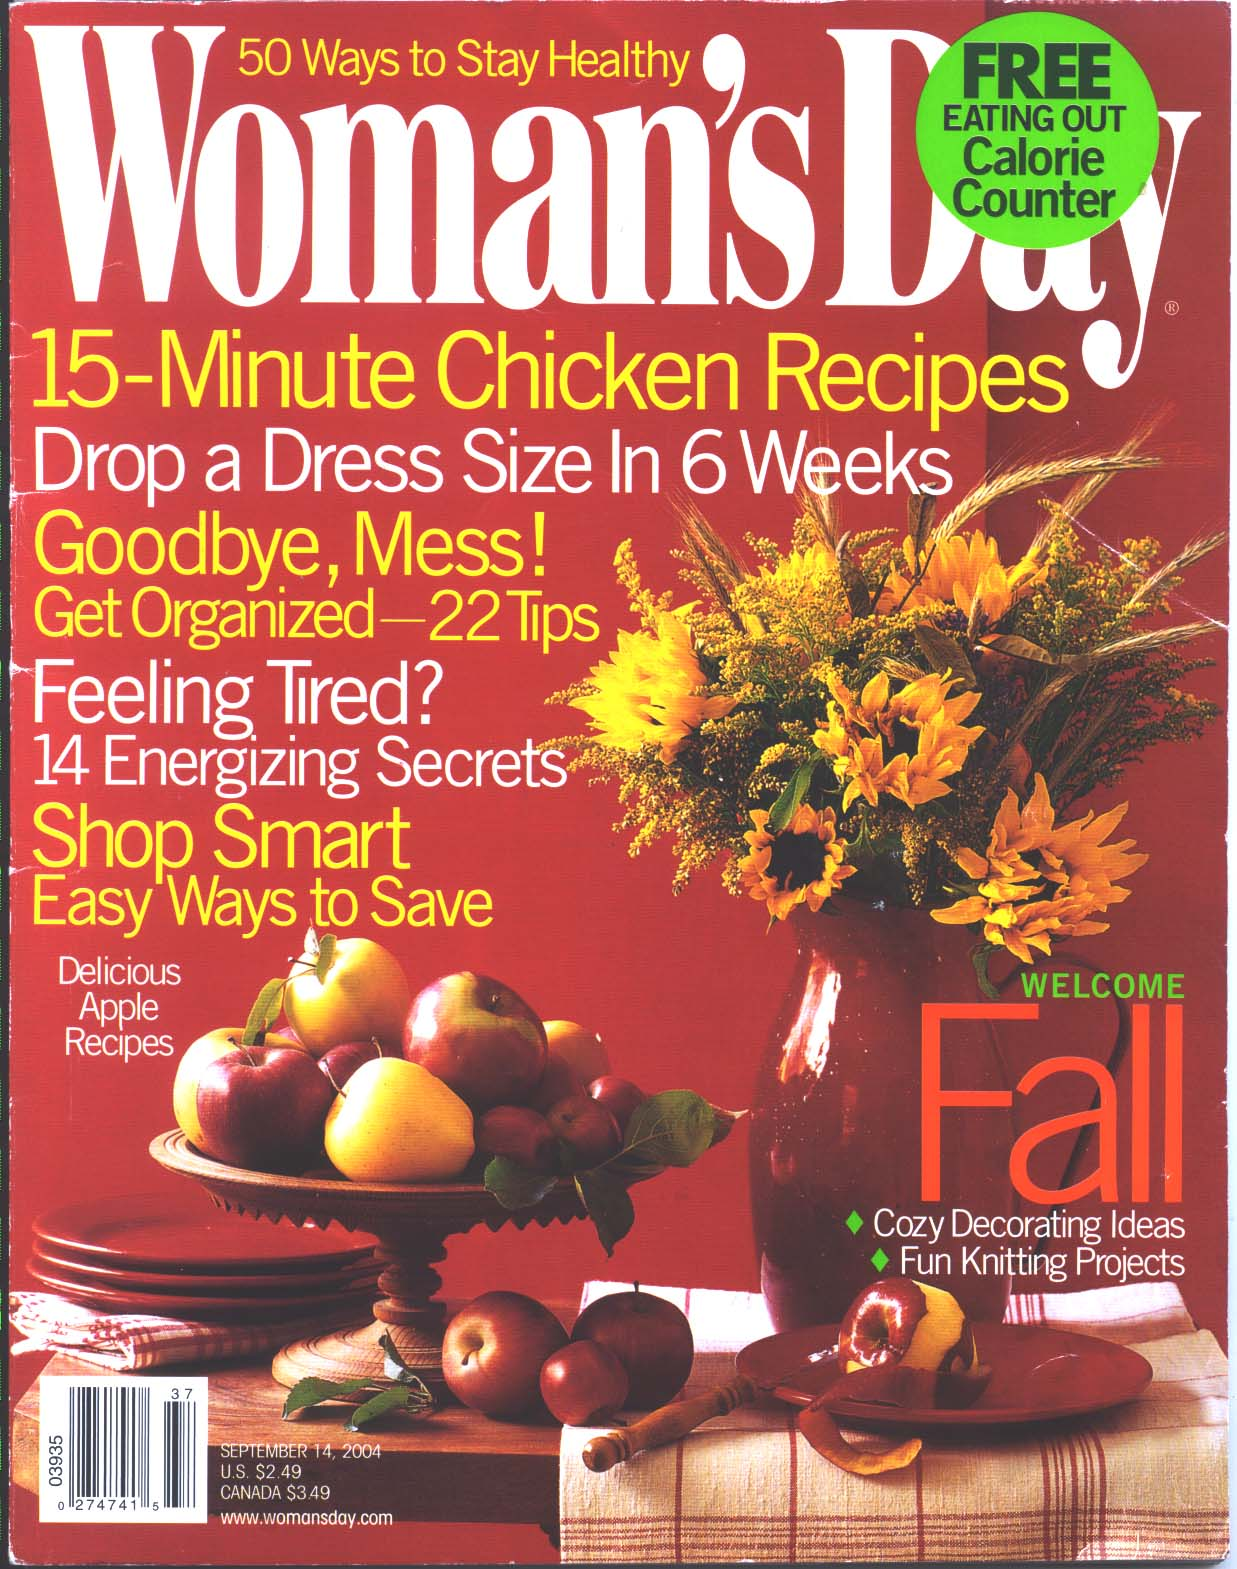 Woman's Day cover page - Sept. 14, 2004.jpg